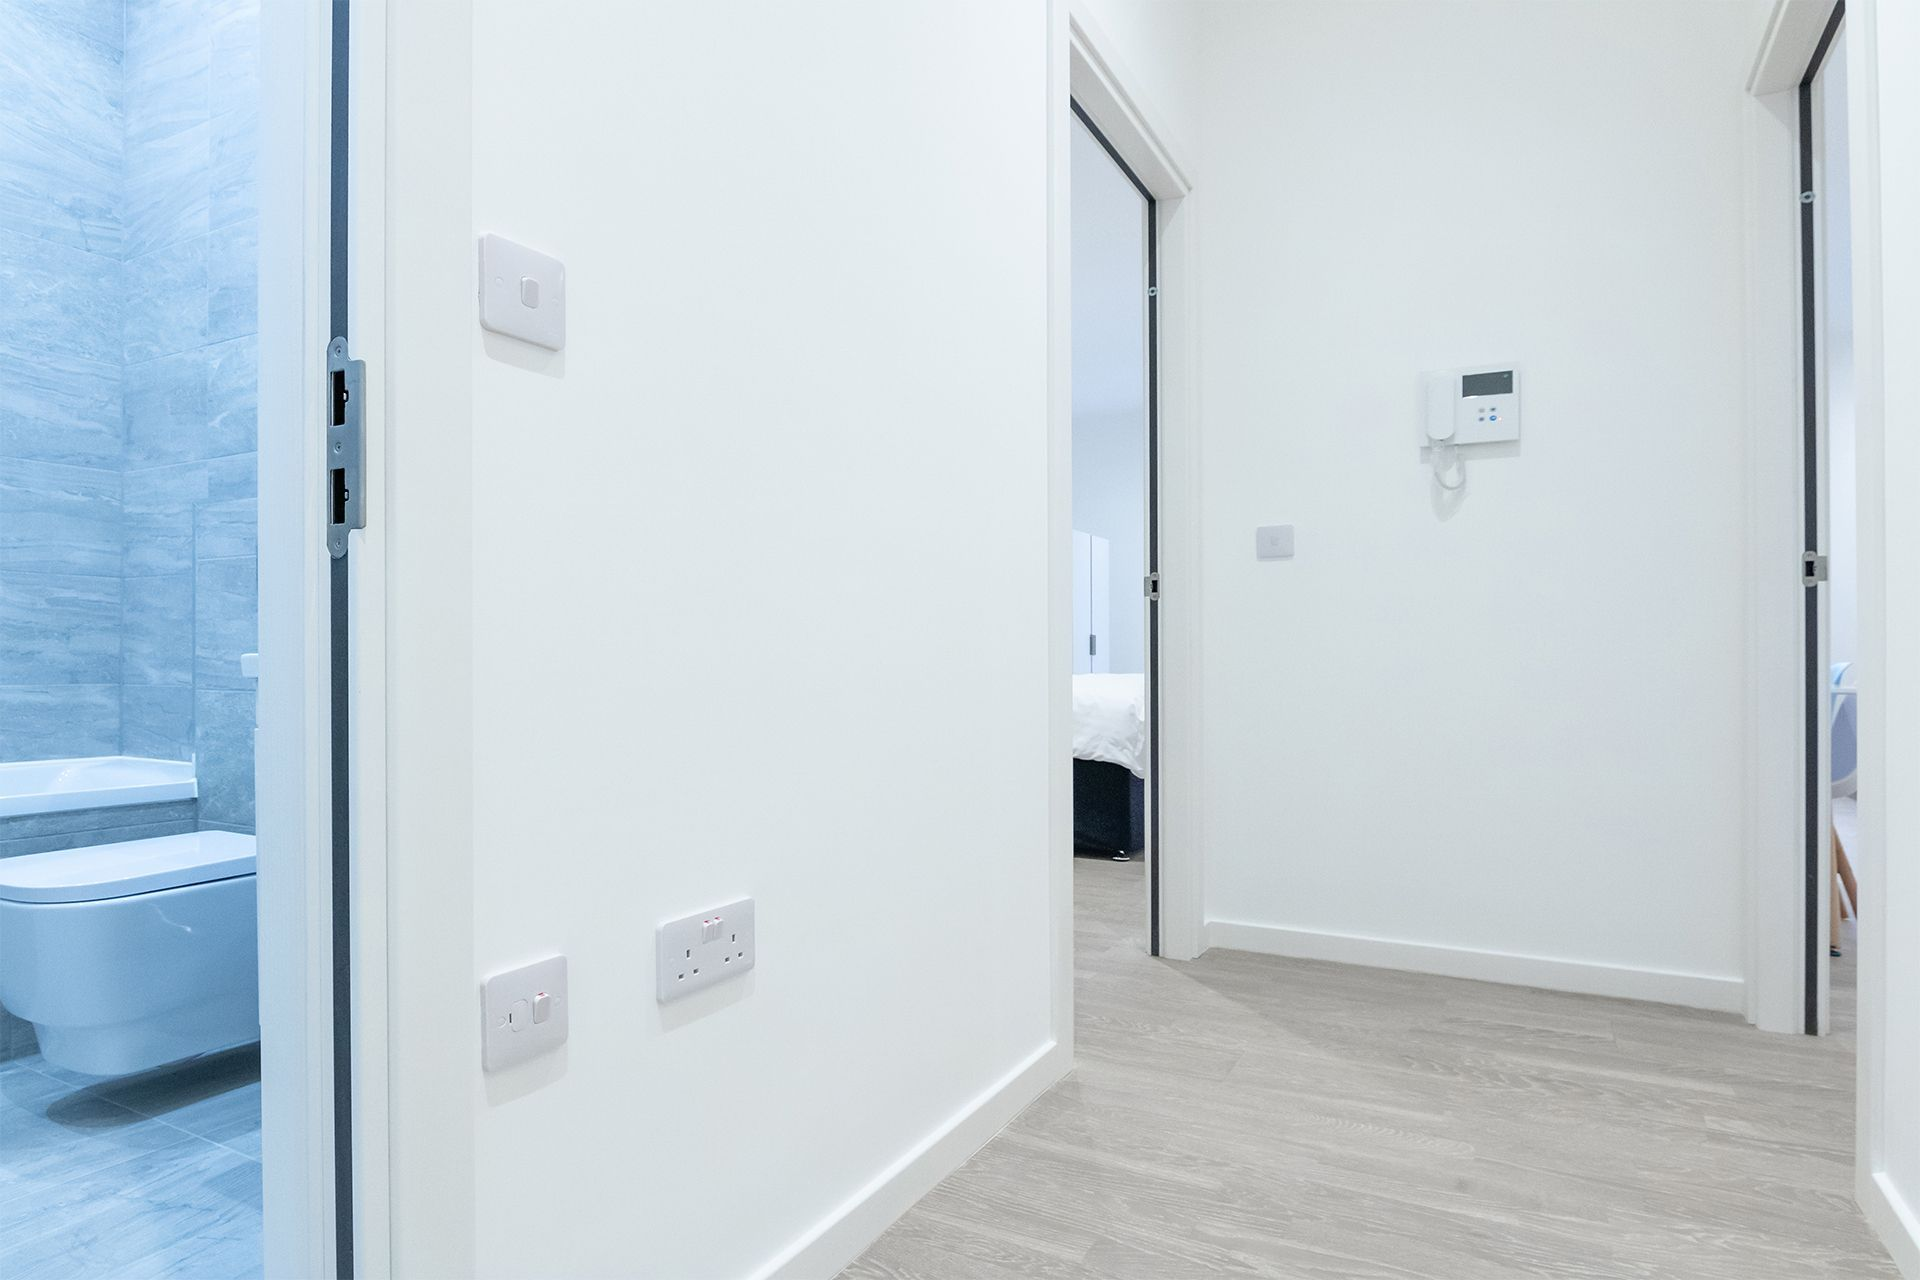 2 Bedroom apartment to rent in London VIL-ST-0009